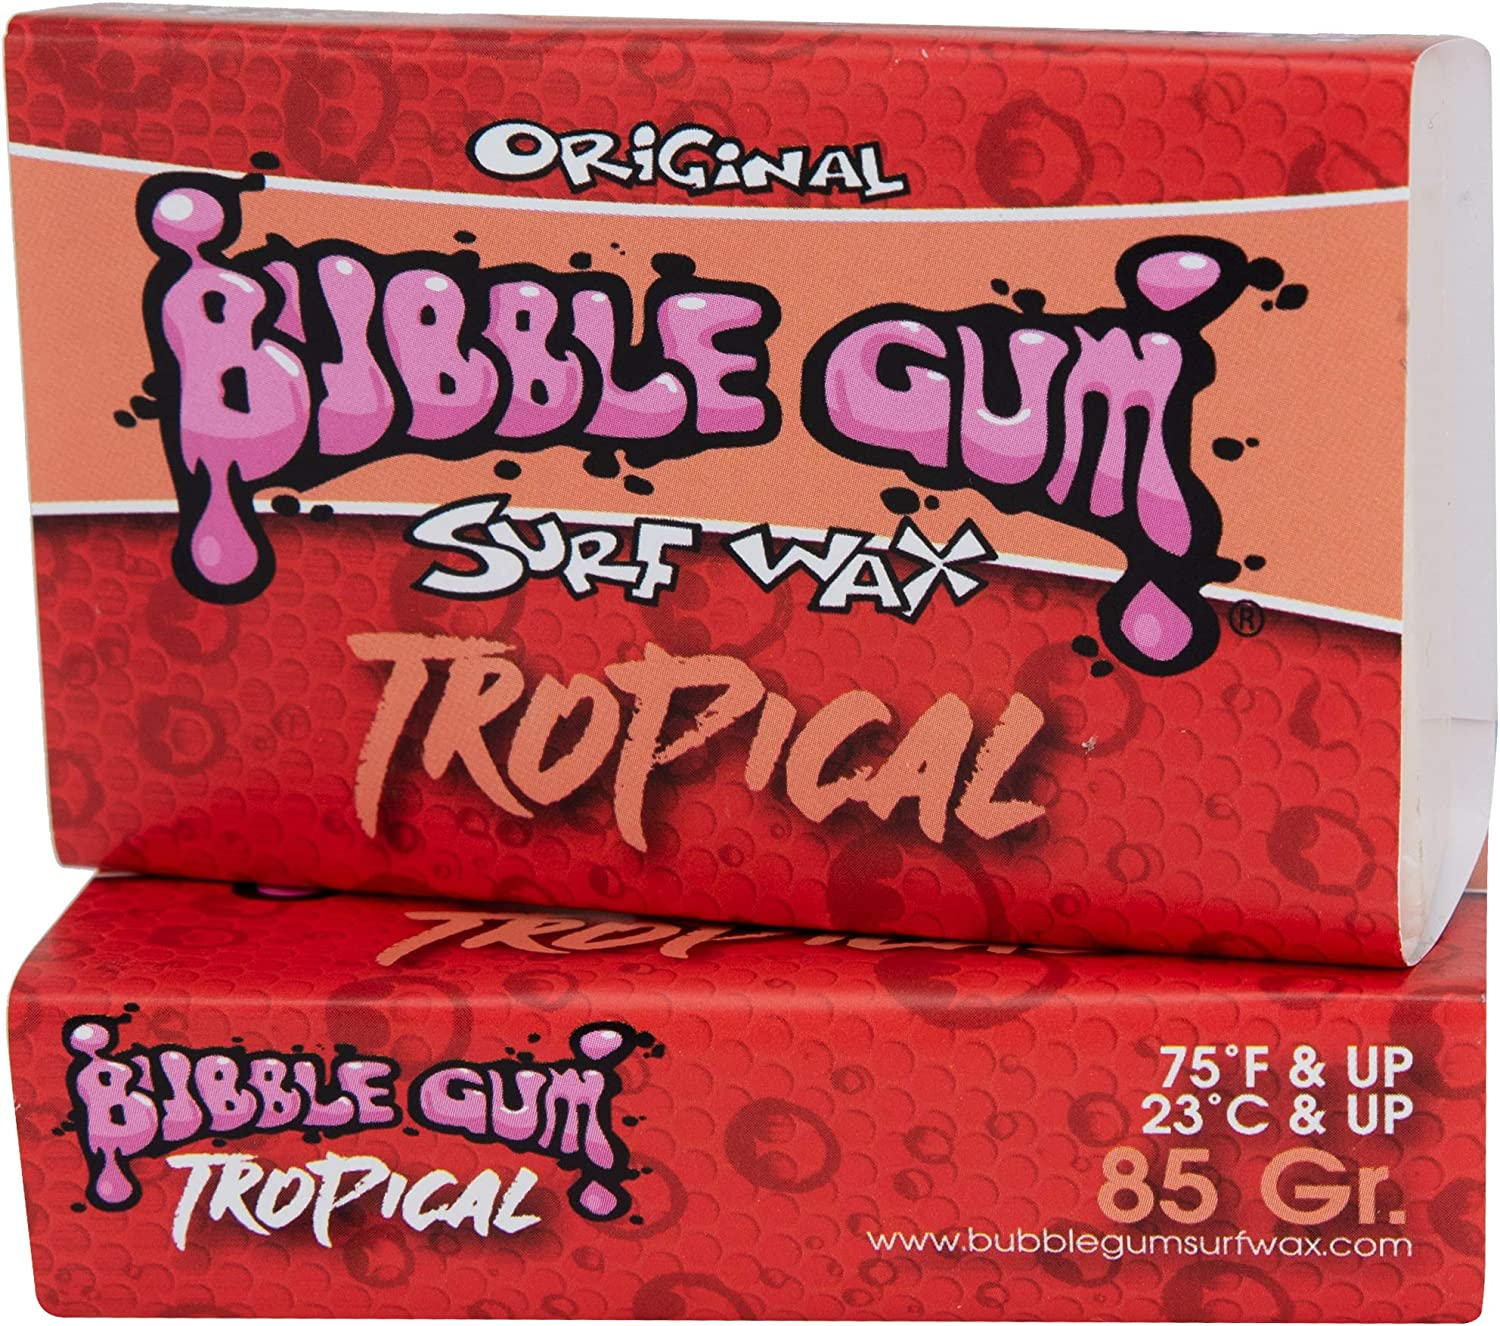 Bubble Gum Surf Wax 74/° and Above Tropical